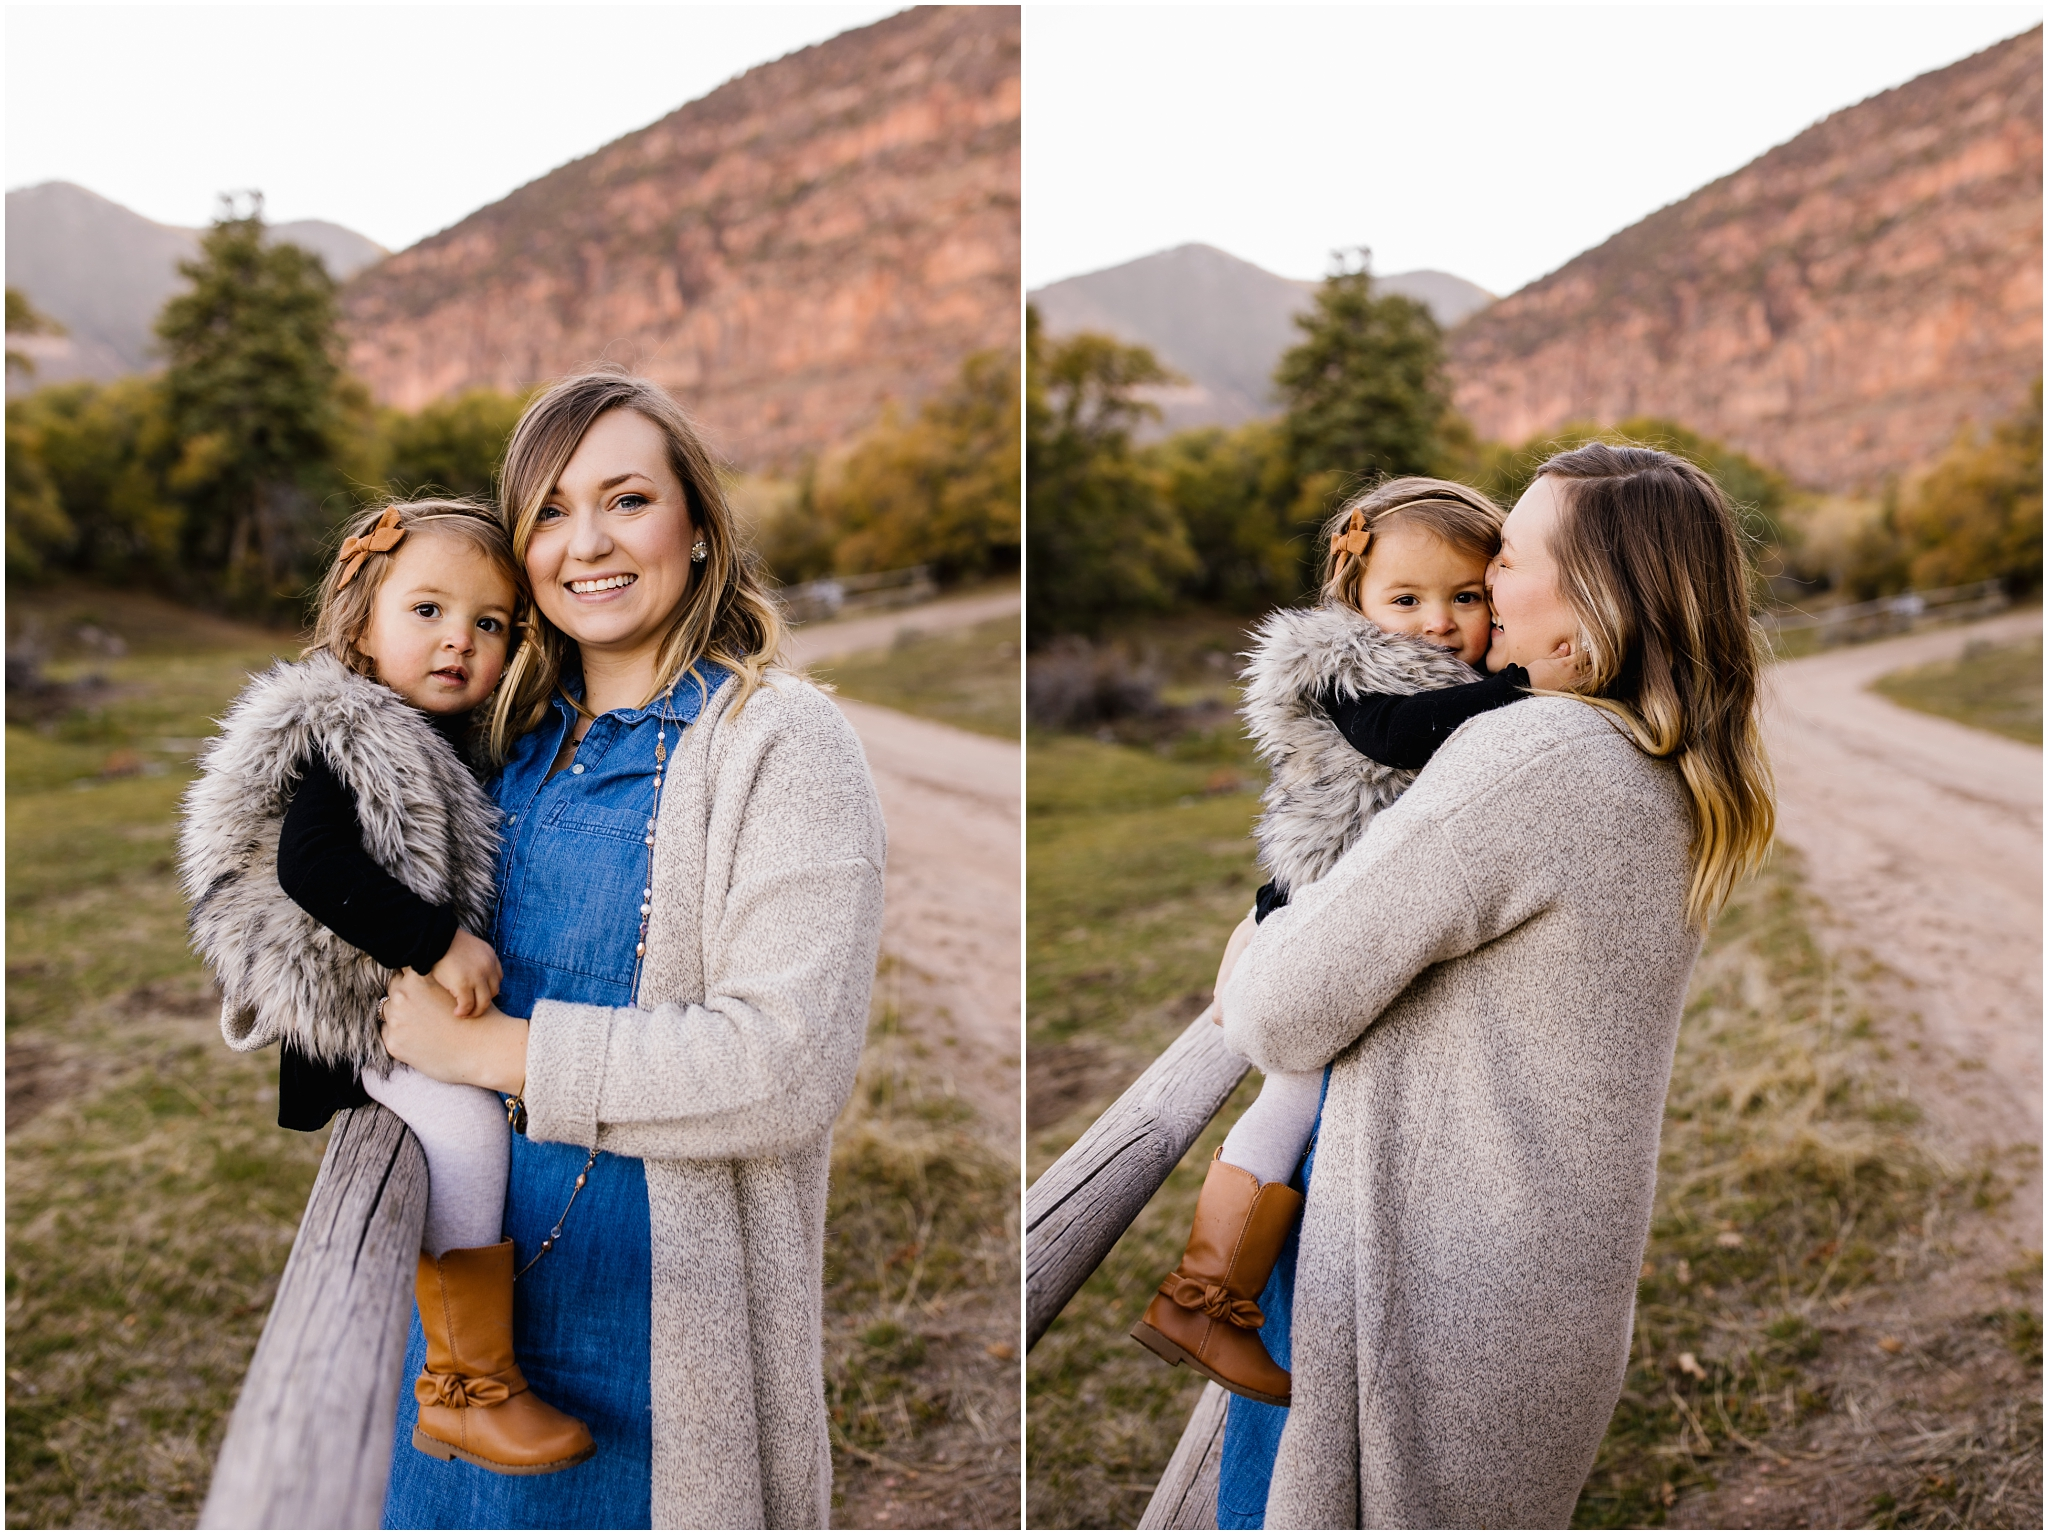 Frandsen-60_Lizzie-B-Imagery-Utah-Family-Photographer-Utah-County-Central-Utah-Park-City-Salt-Lake-City.jpg